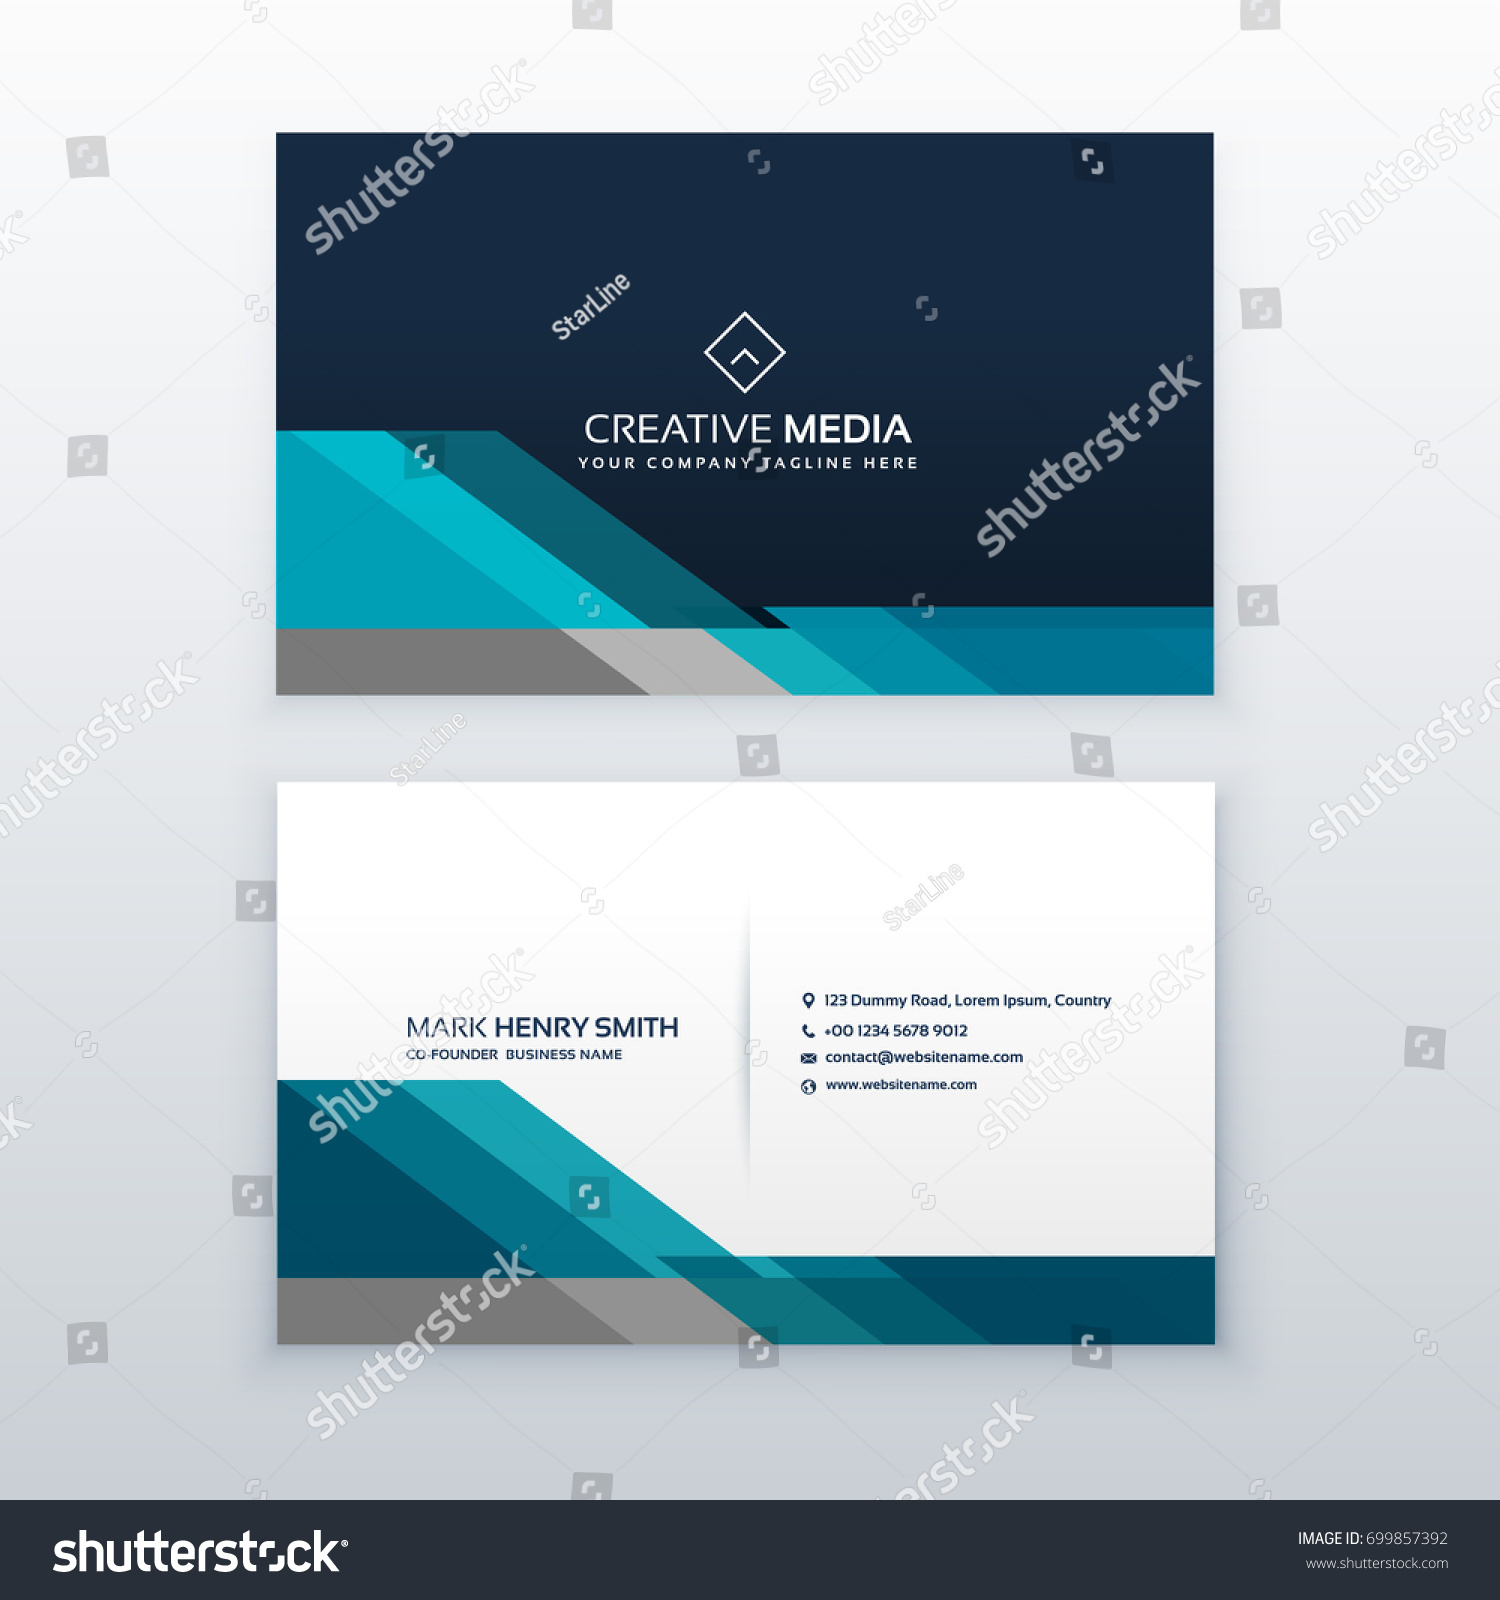 Professional Business Card Design Template Stock Vector Royalty - Professional business card design templates